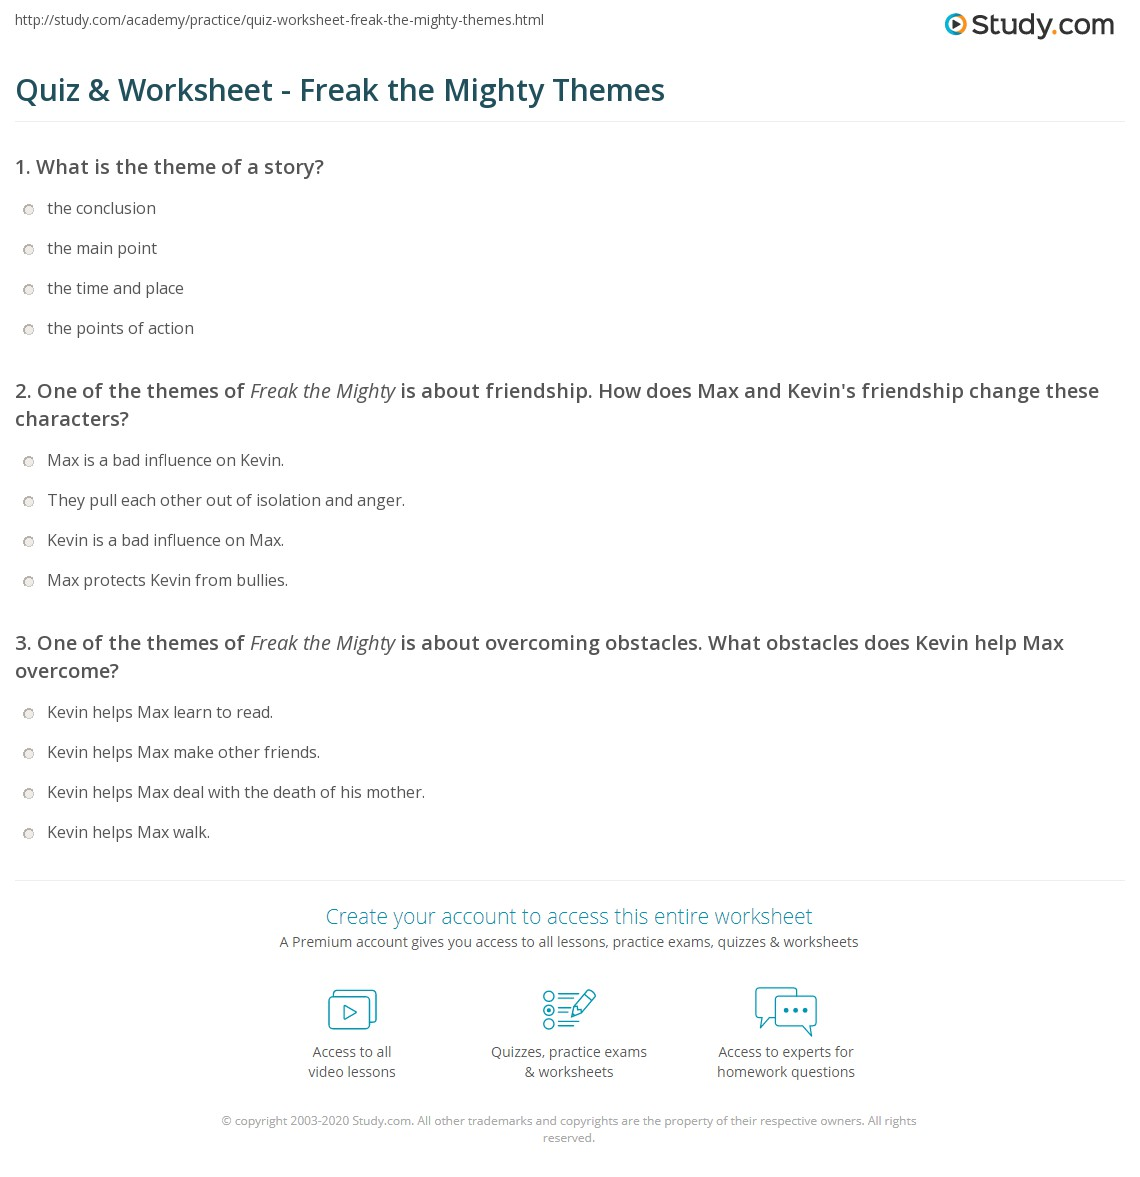 Worksheets Freak The Mighty Worksheets quiz worksheet freak the mighty themes study com print of worksheet